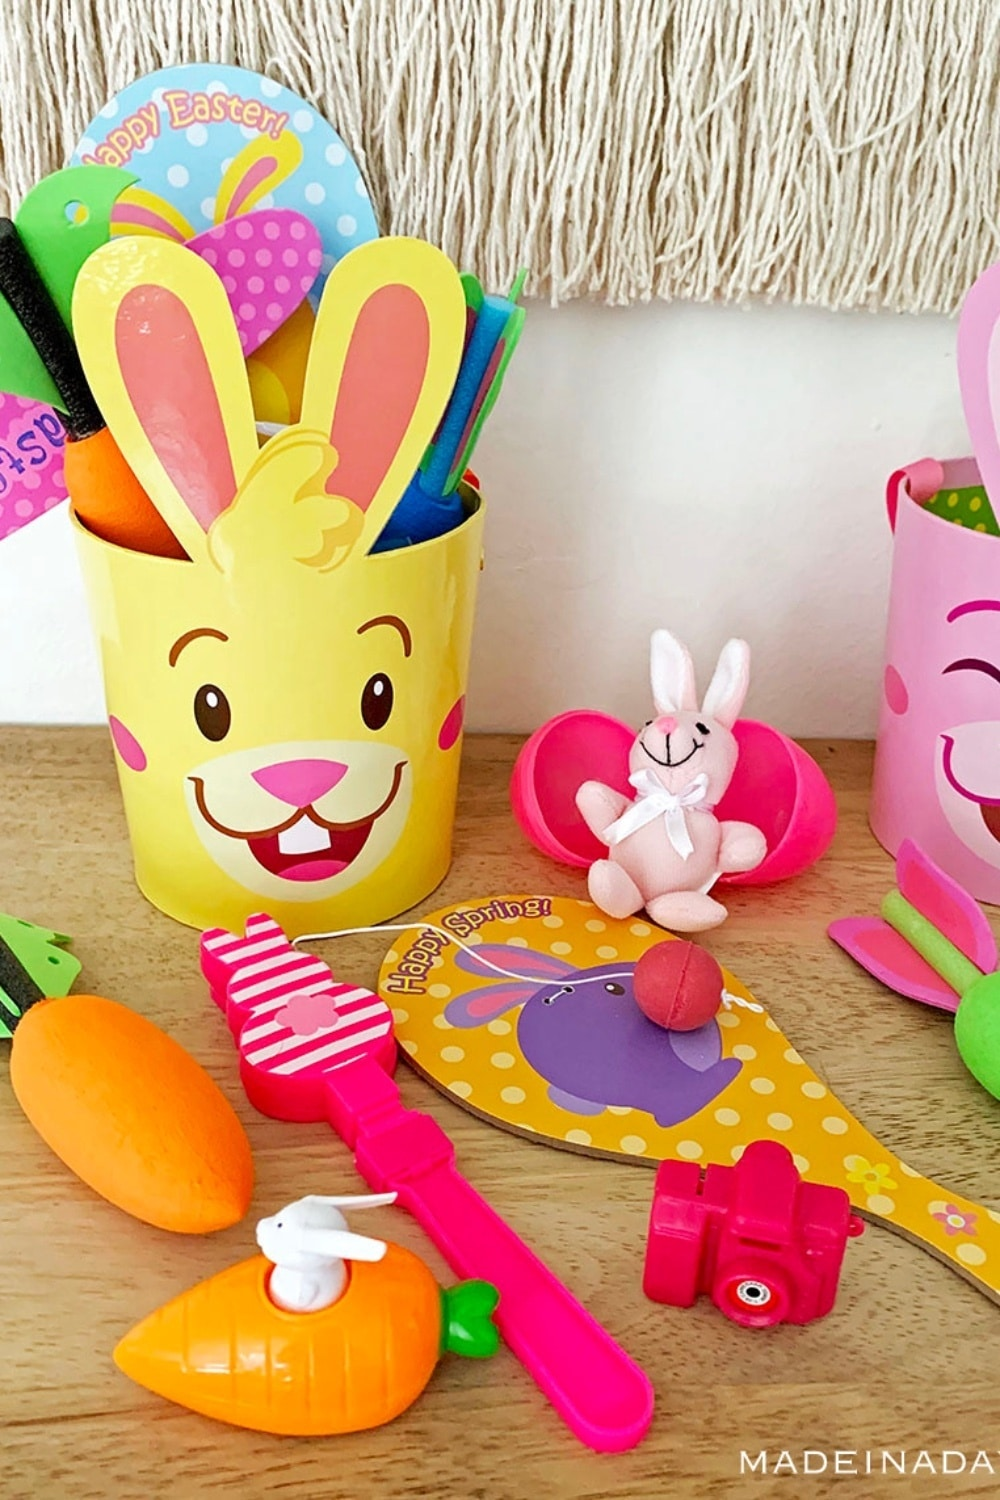 Easter Basket Filler Ideas: Kid Approved!